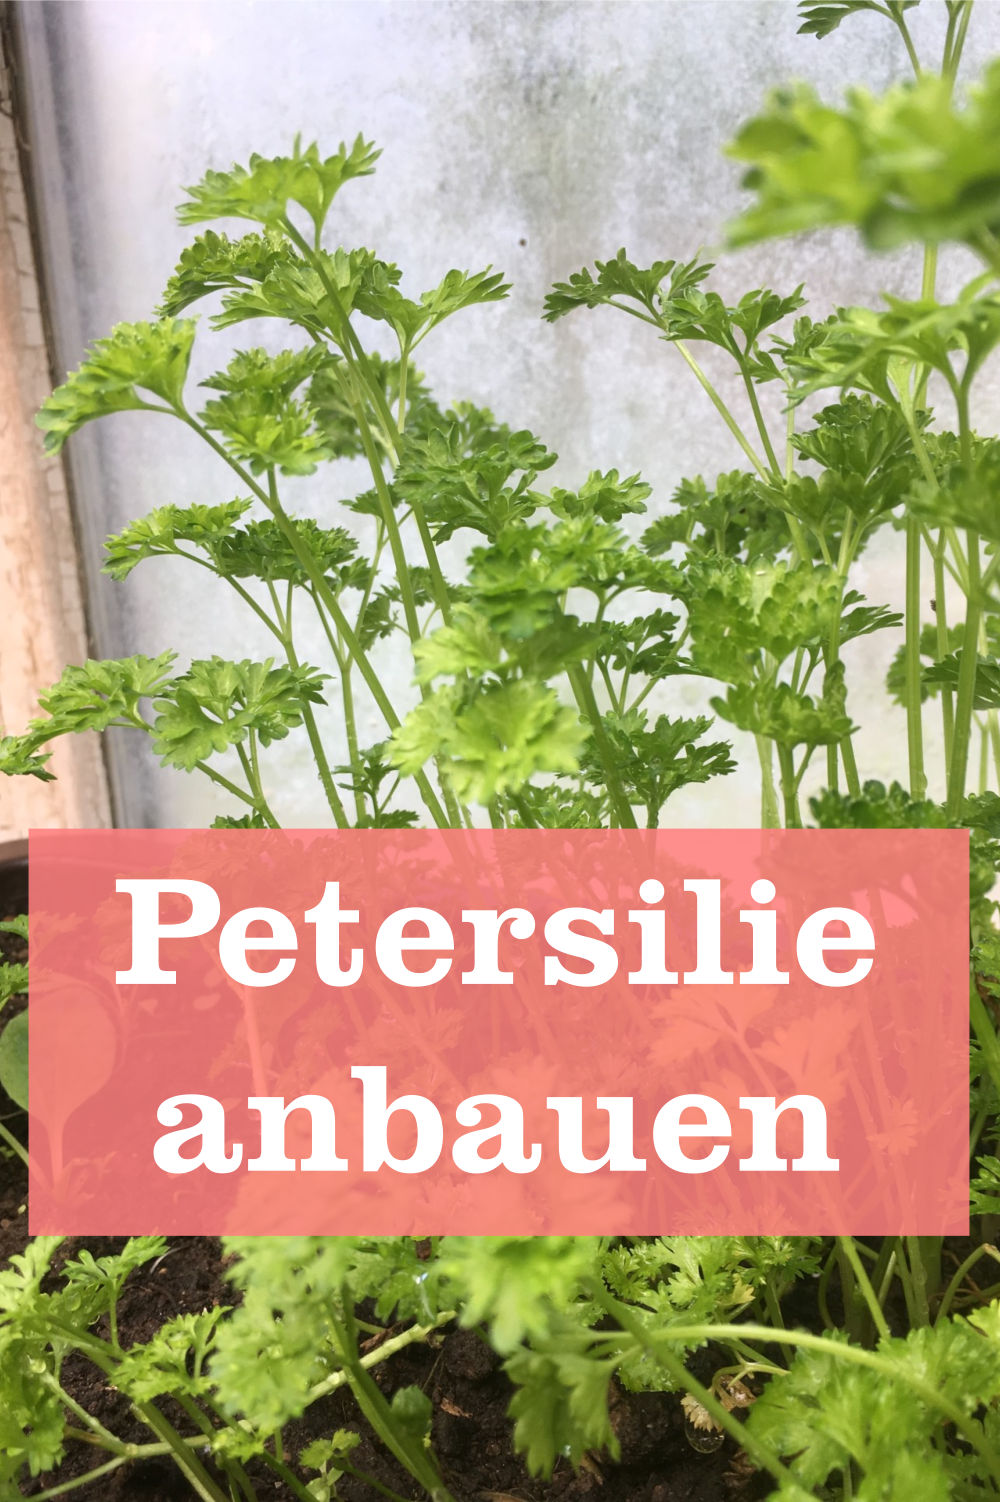 Petersilie anbauen